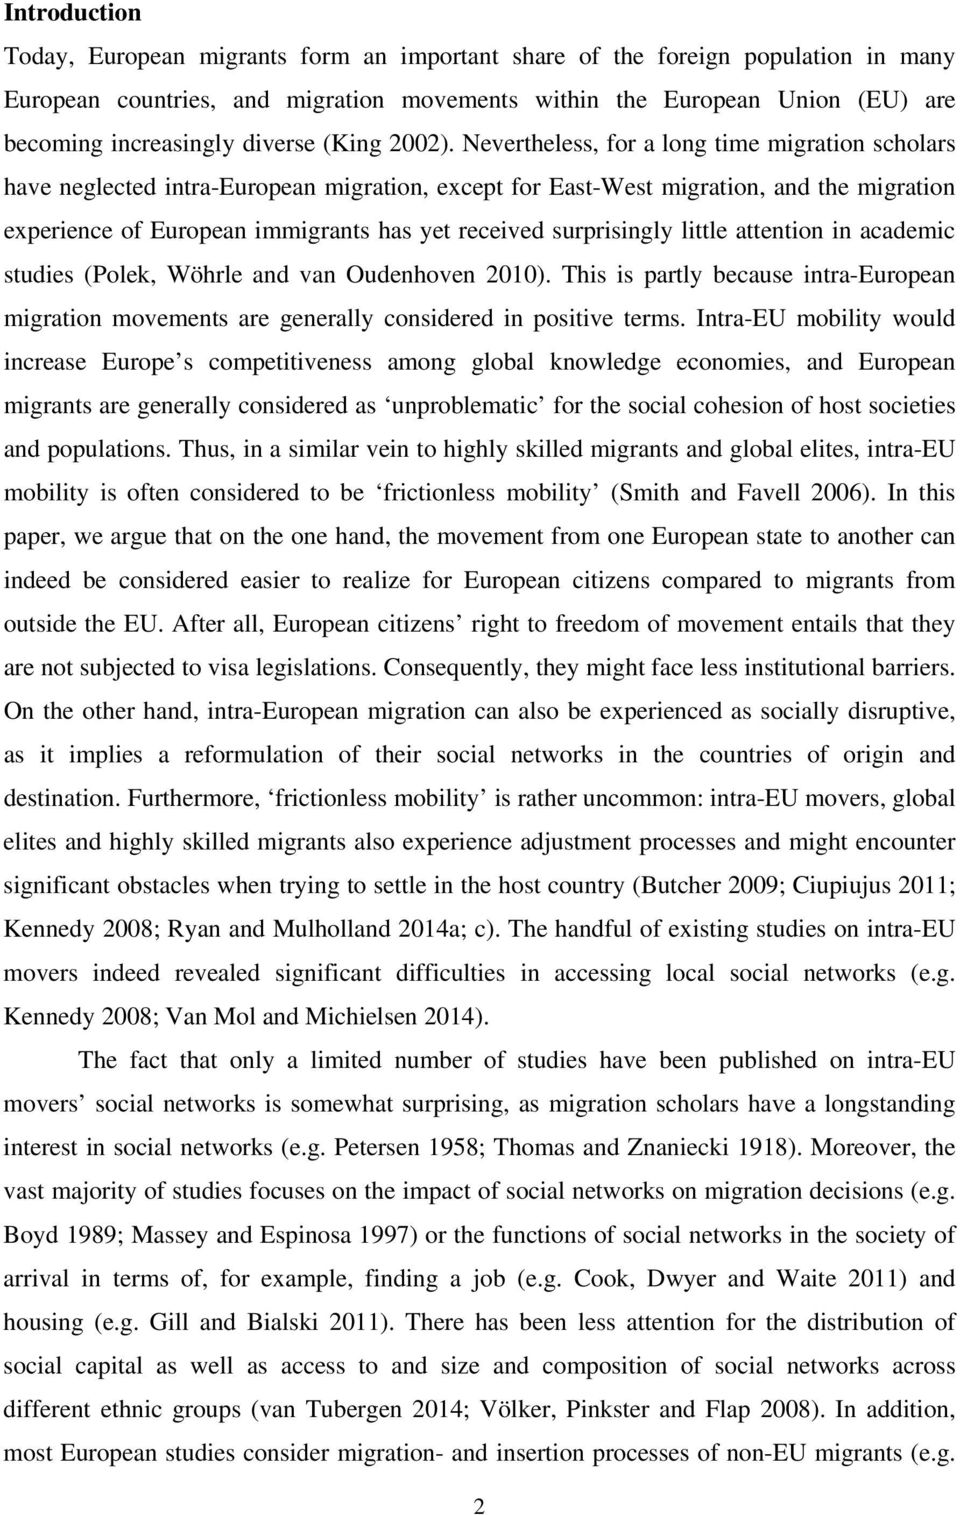 Nevertheless, for a long time migration scholars have neglected intra-european migration, except for East-West migration, and the migration experience of European immigrants has yet received